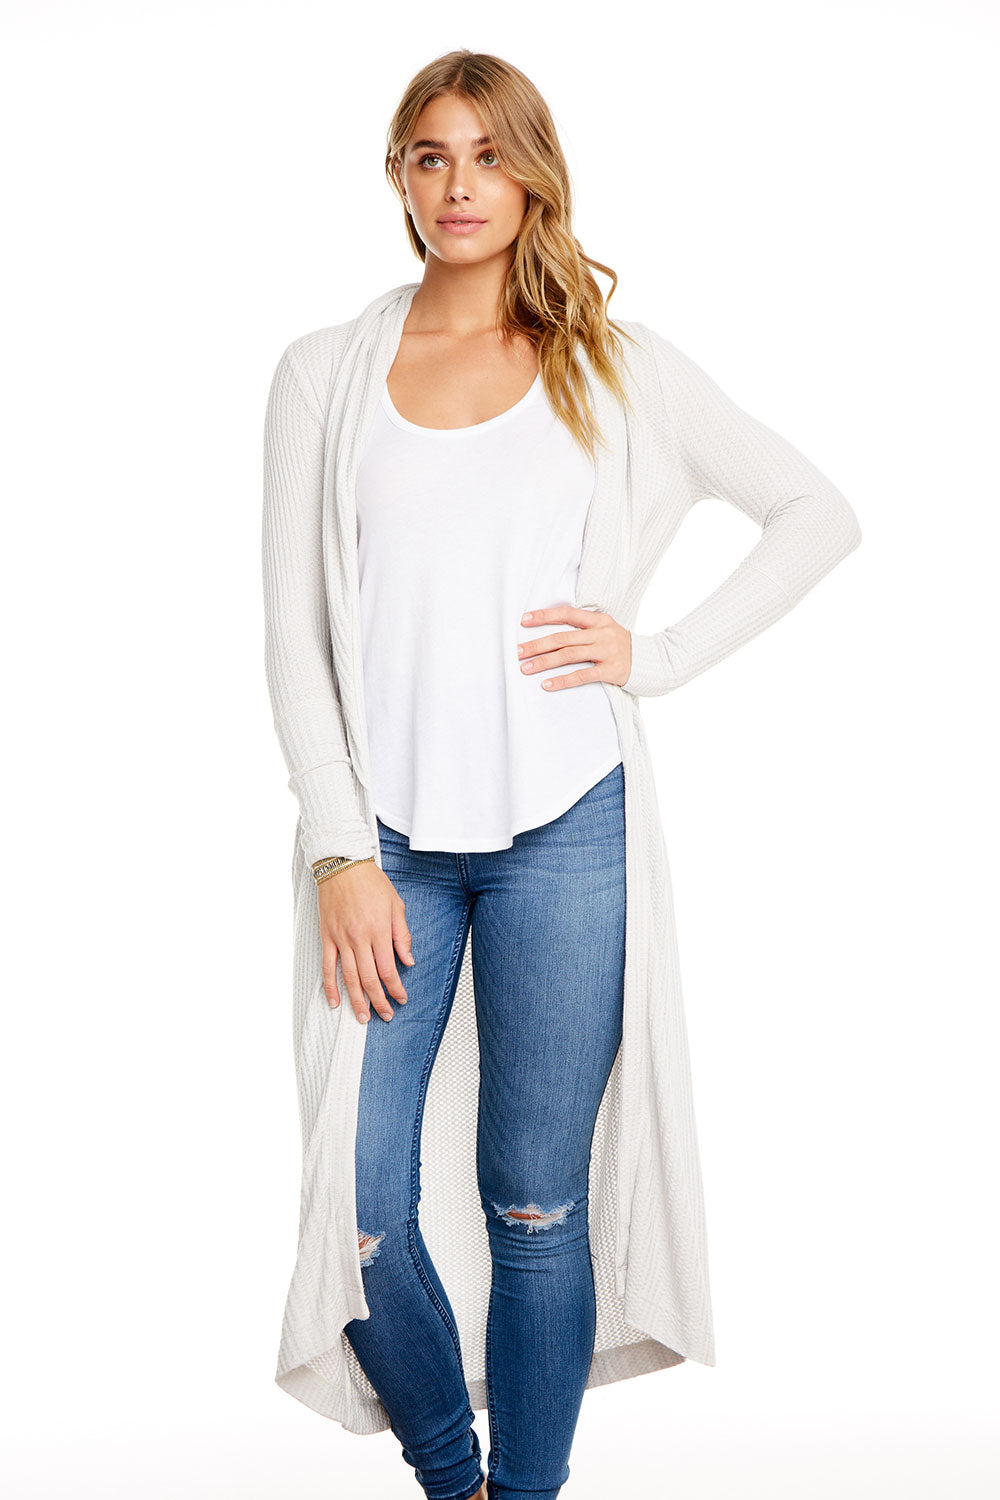 THERMAL L/S SHAWL COLLAR OPEN FRONT DUSTER, WOMENS, chaserbrand.com,chaser clothing,chaser apparel,chaser los angeles